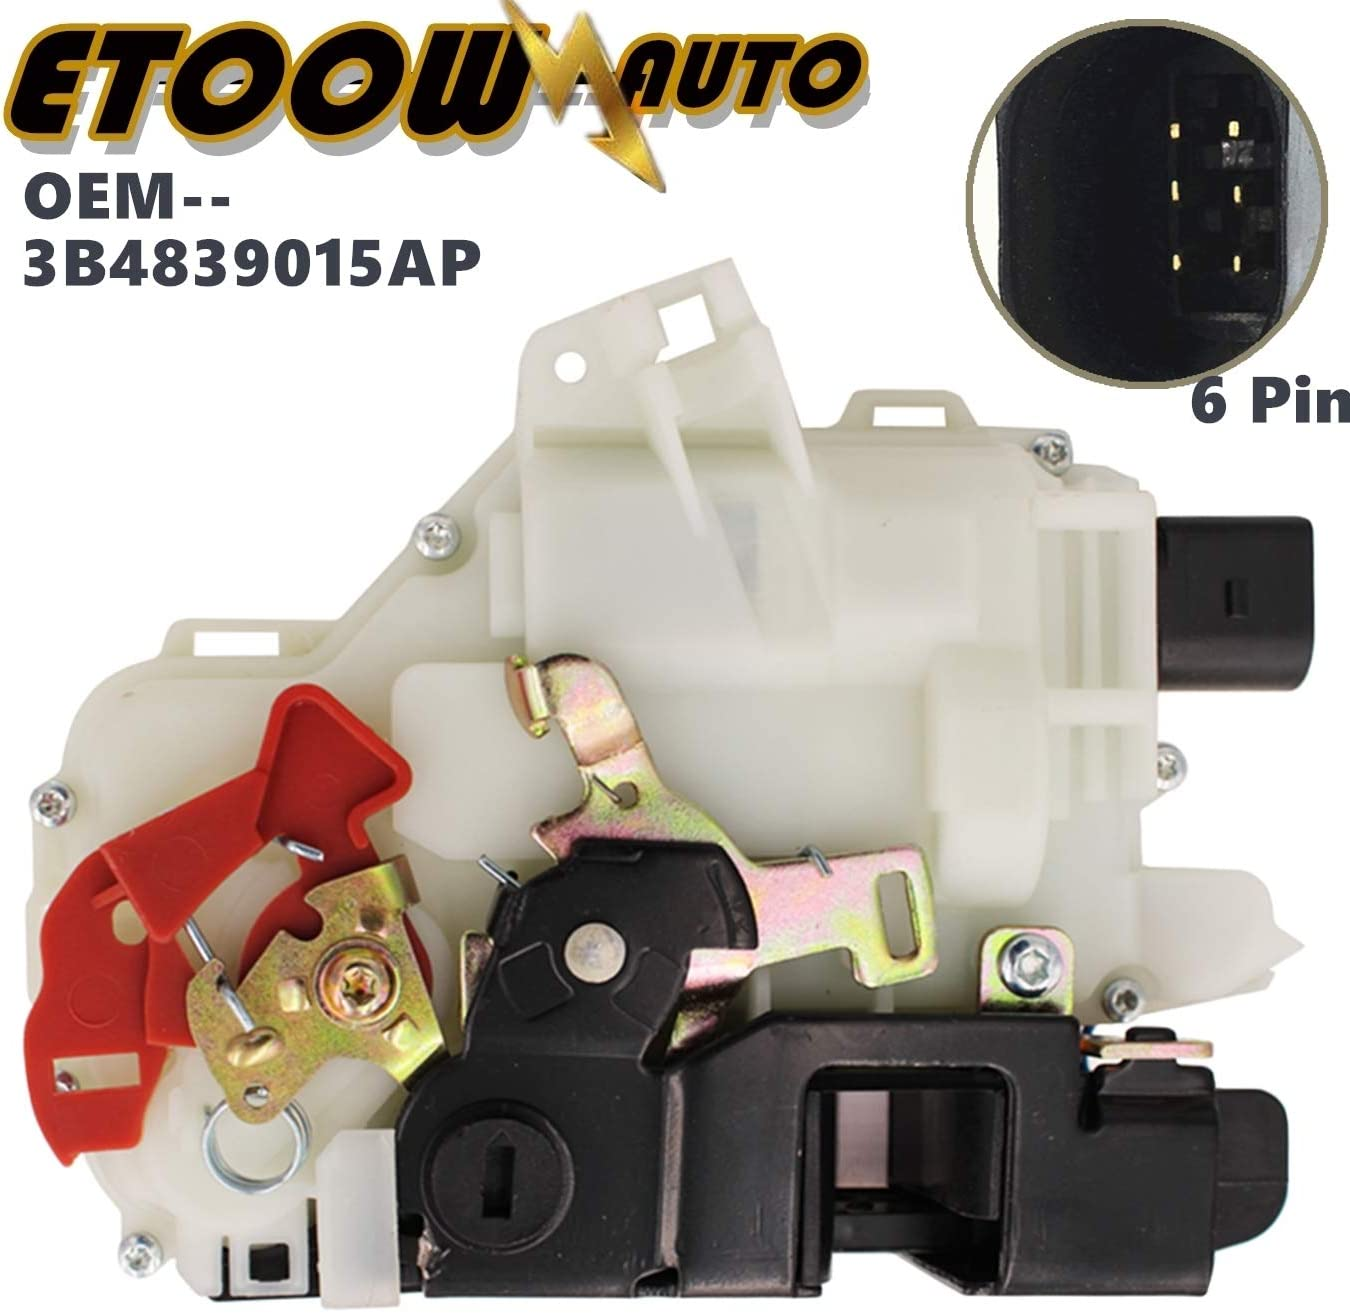 ETOOW Rear Left Driver Same day shipping Door Lock 015A Actuator Latch 839 3B4 OEM Max 89% OFF